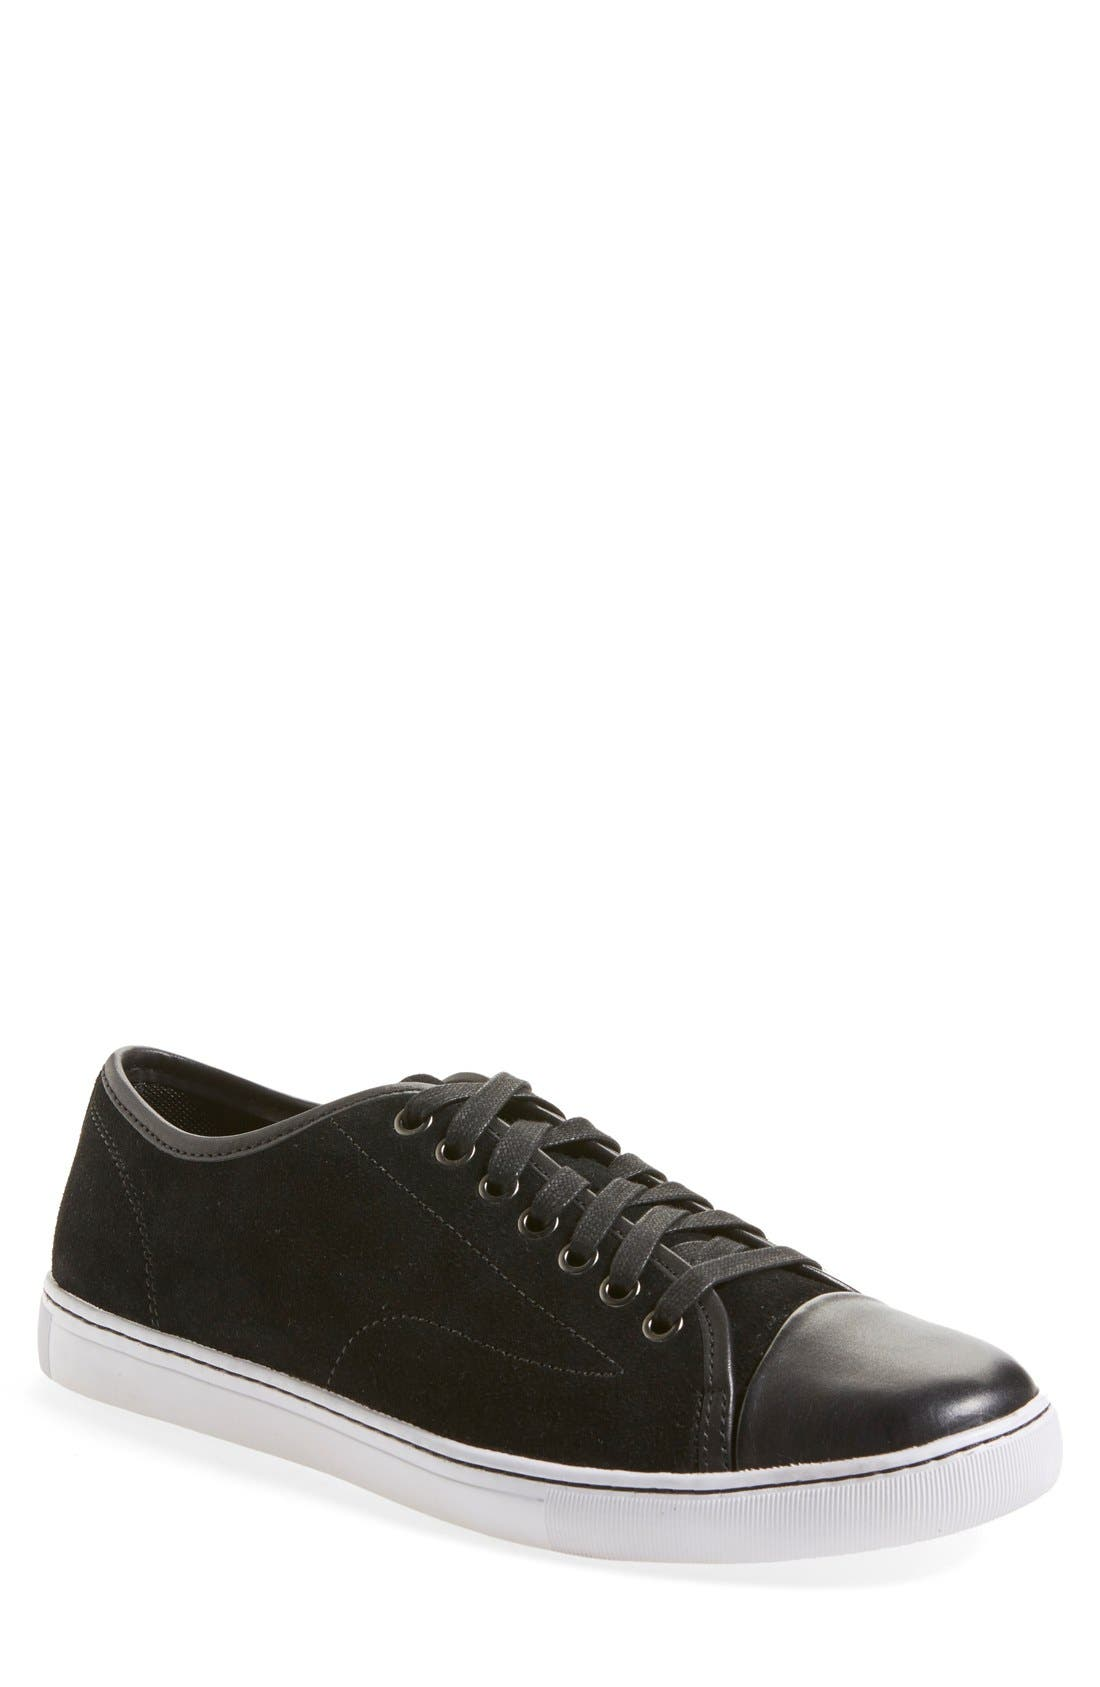 Alternate Image 1 Selected - The Rail 'Mateo' Sneaker (Men)